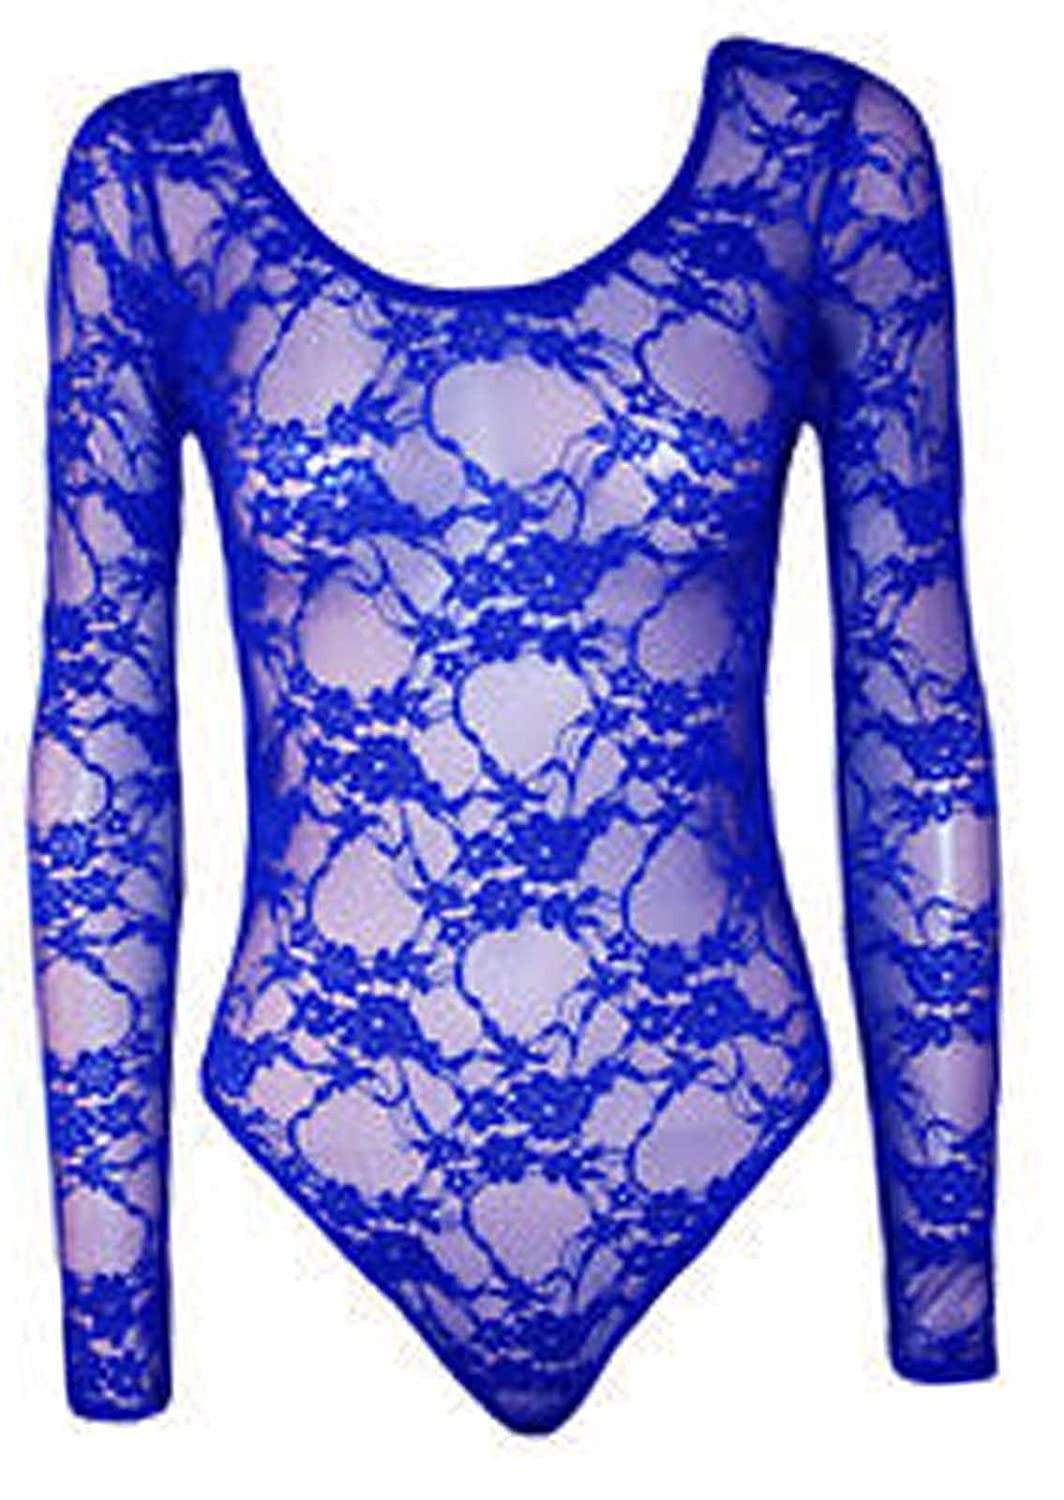 Comfiestyle Womens Ladies Plus Size Mesh Insert Lace Leotard Bodysuit Body con Top 8 to 26